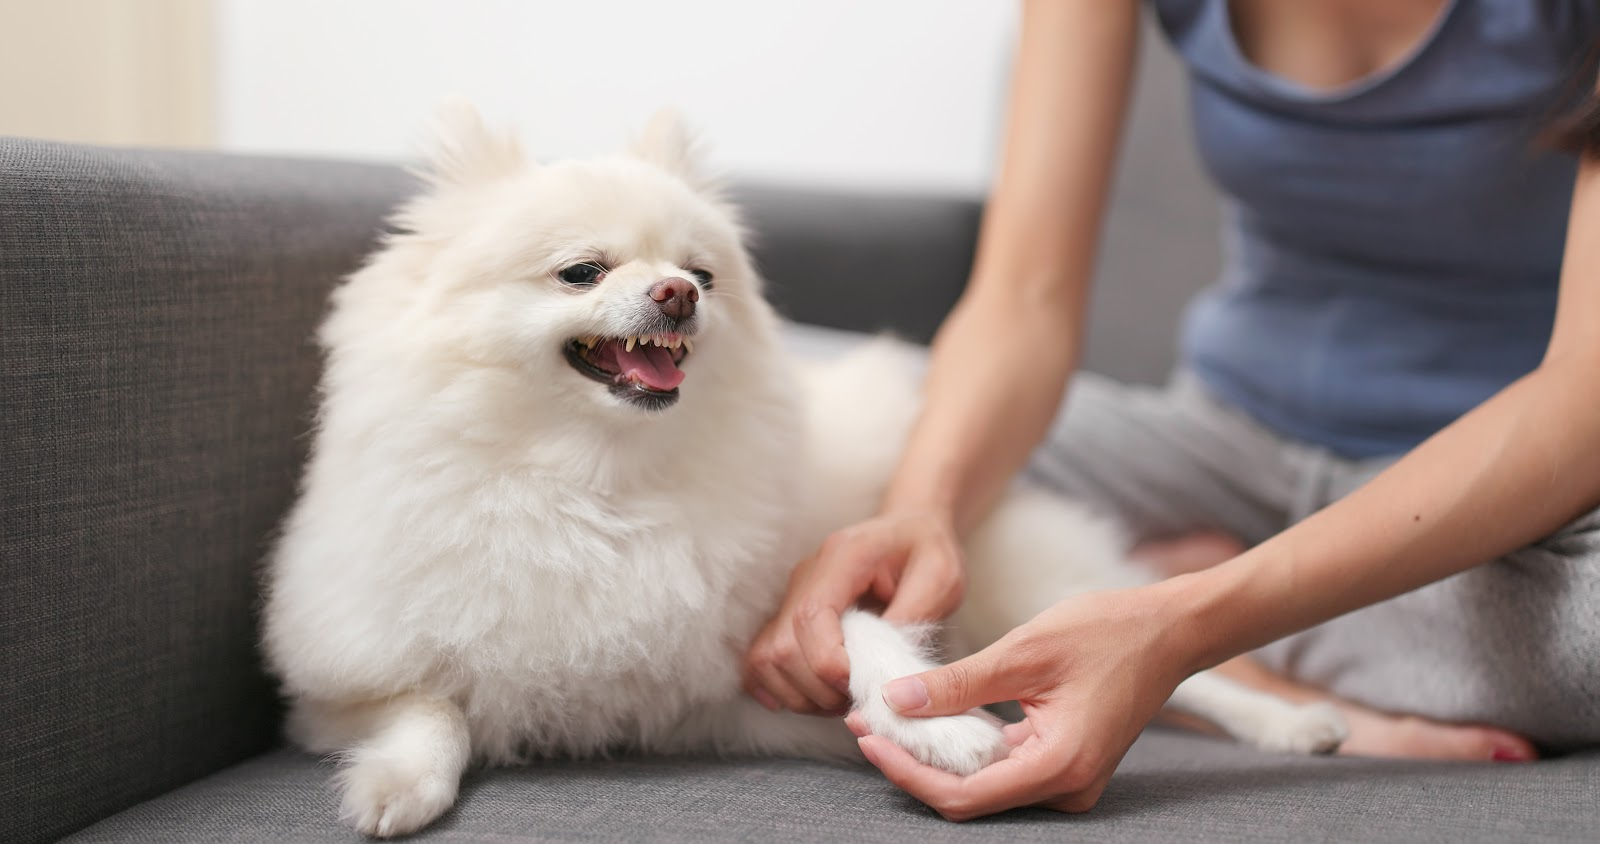 Woman looking at dog's paw while he growls